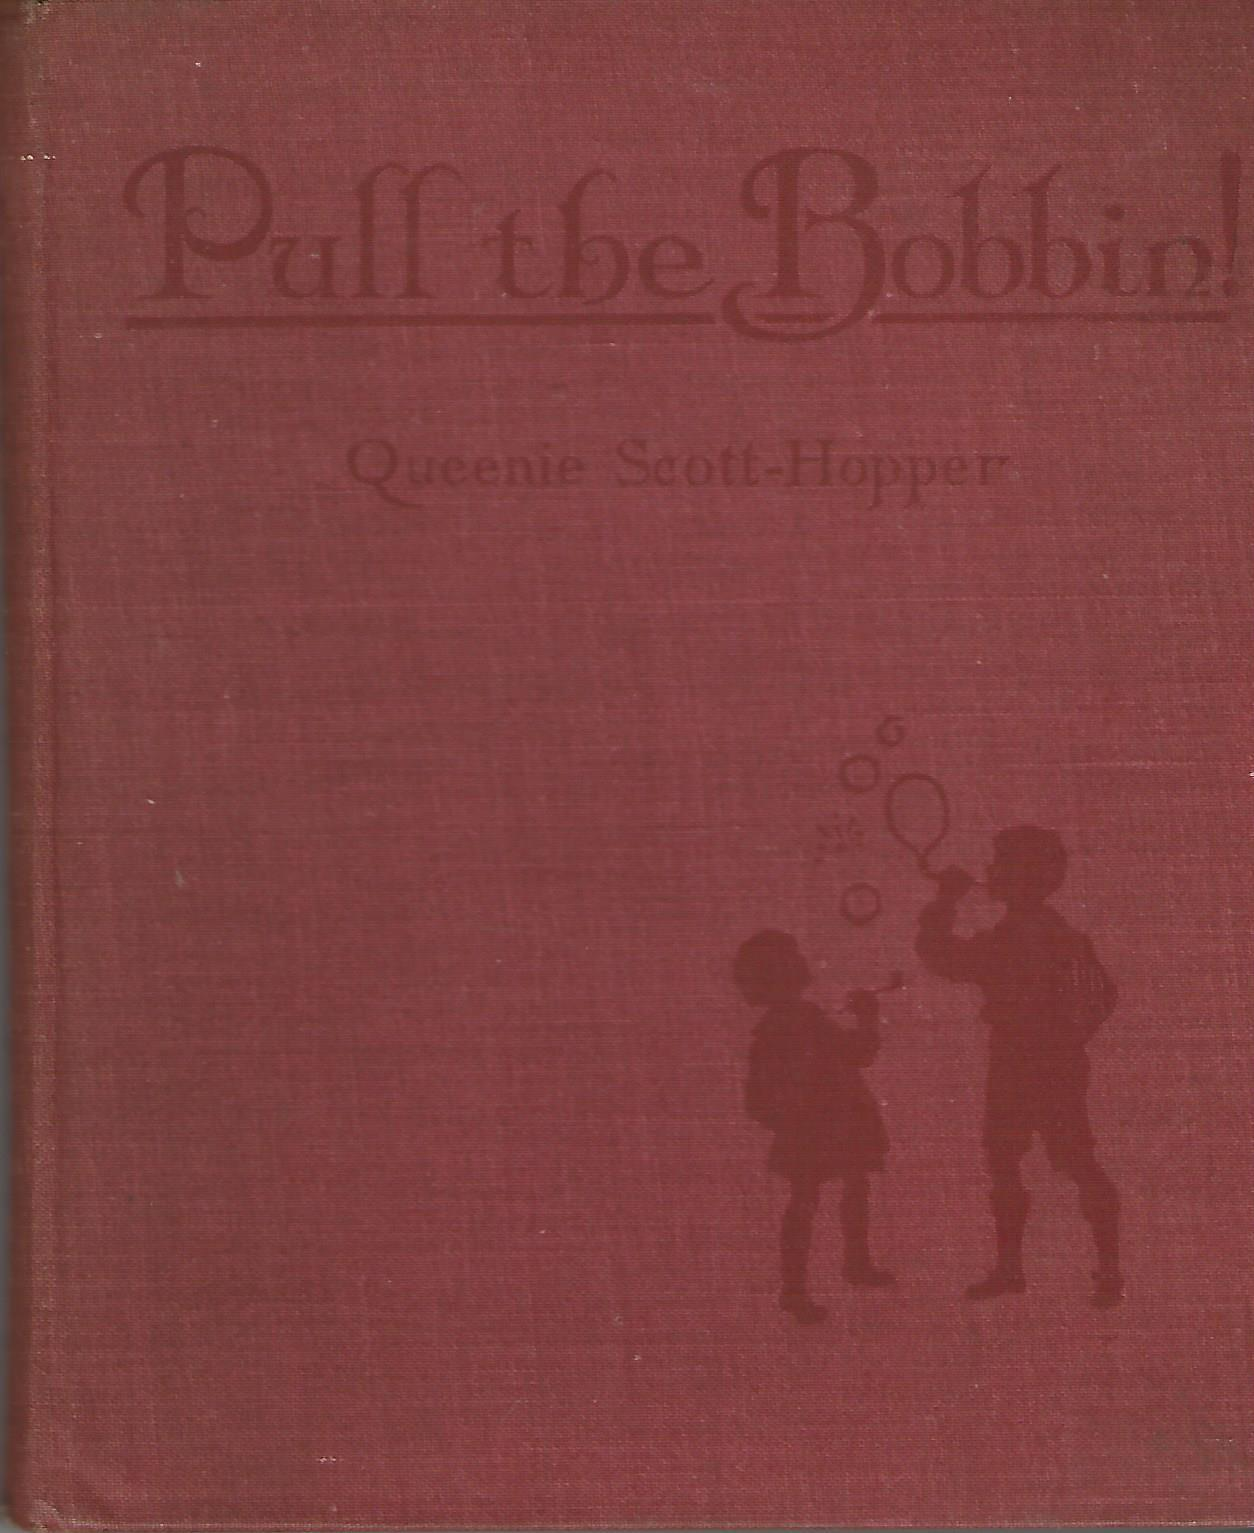 Image for Pull the Bobbin! A Garland of Children's Verse.